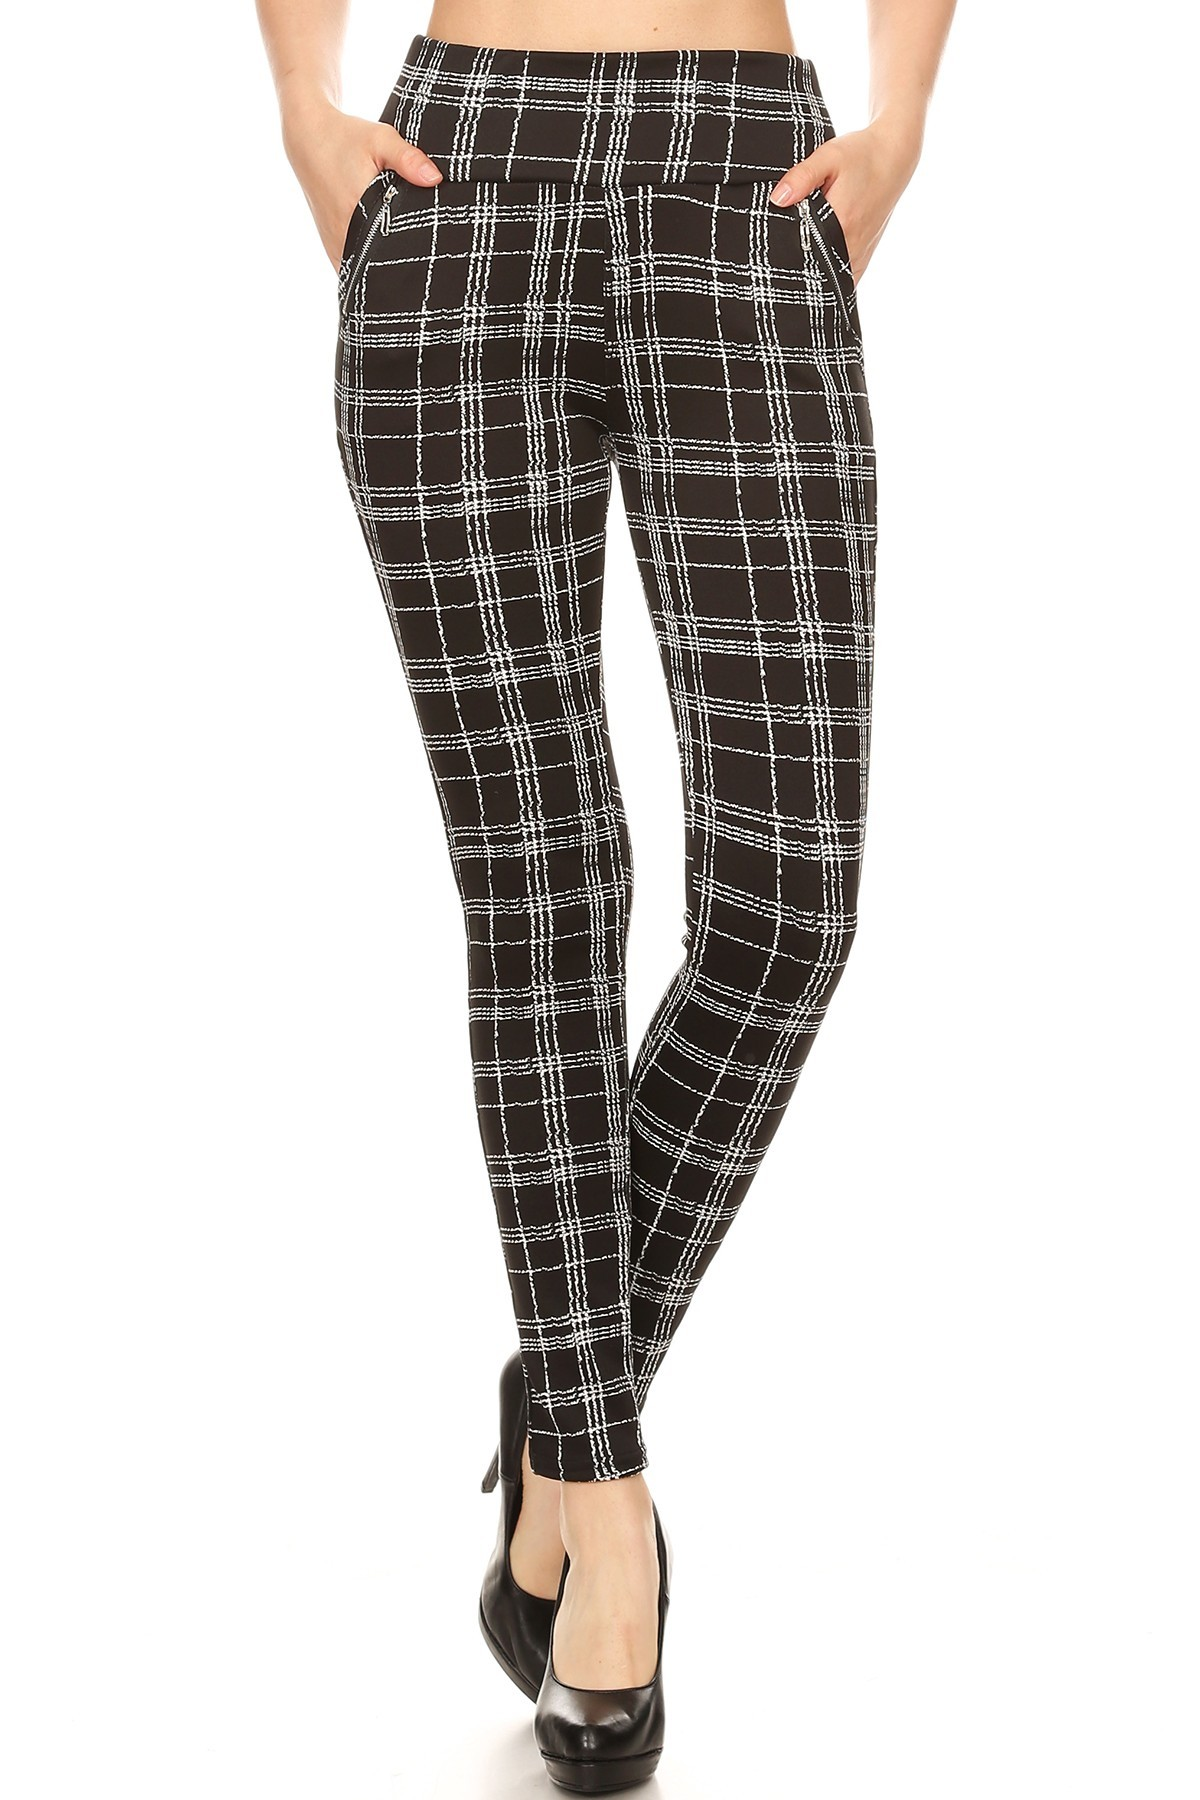 BLACK/WHITE PLAID PRINT TREGGING WITH ZIPPER DETAIL#8TRG03-14